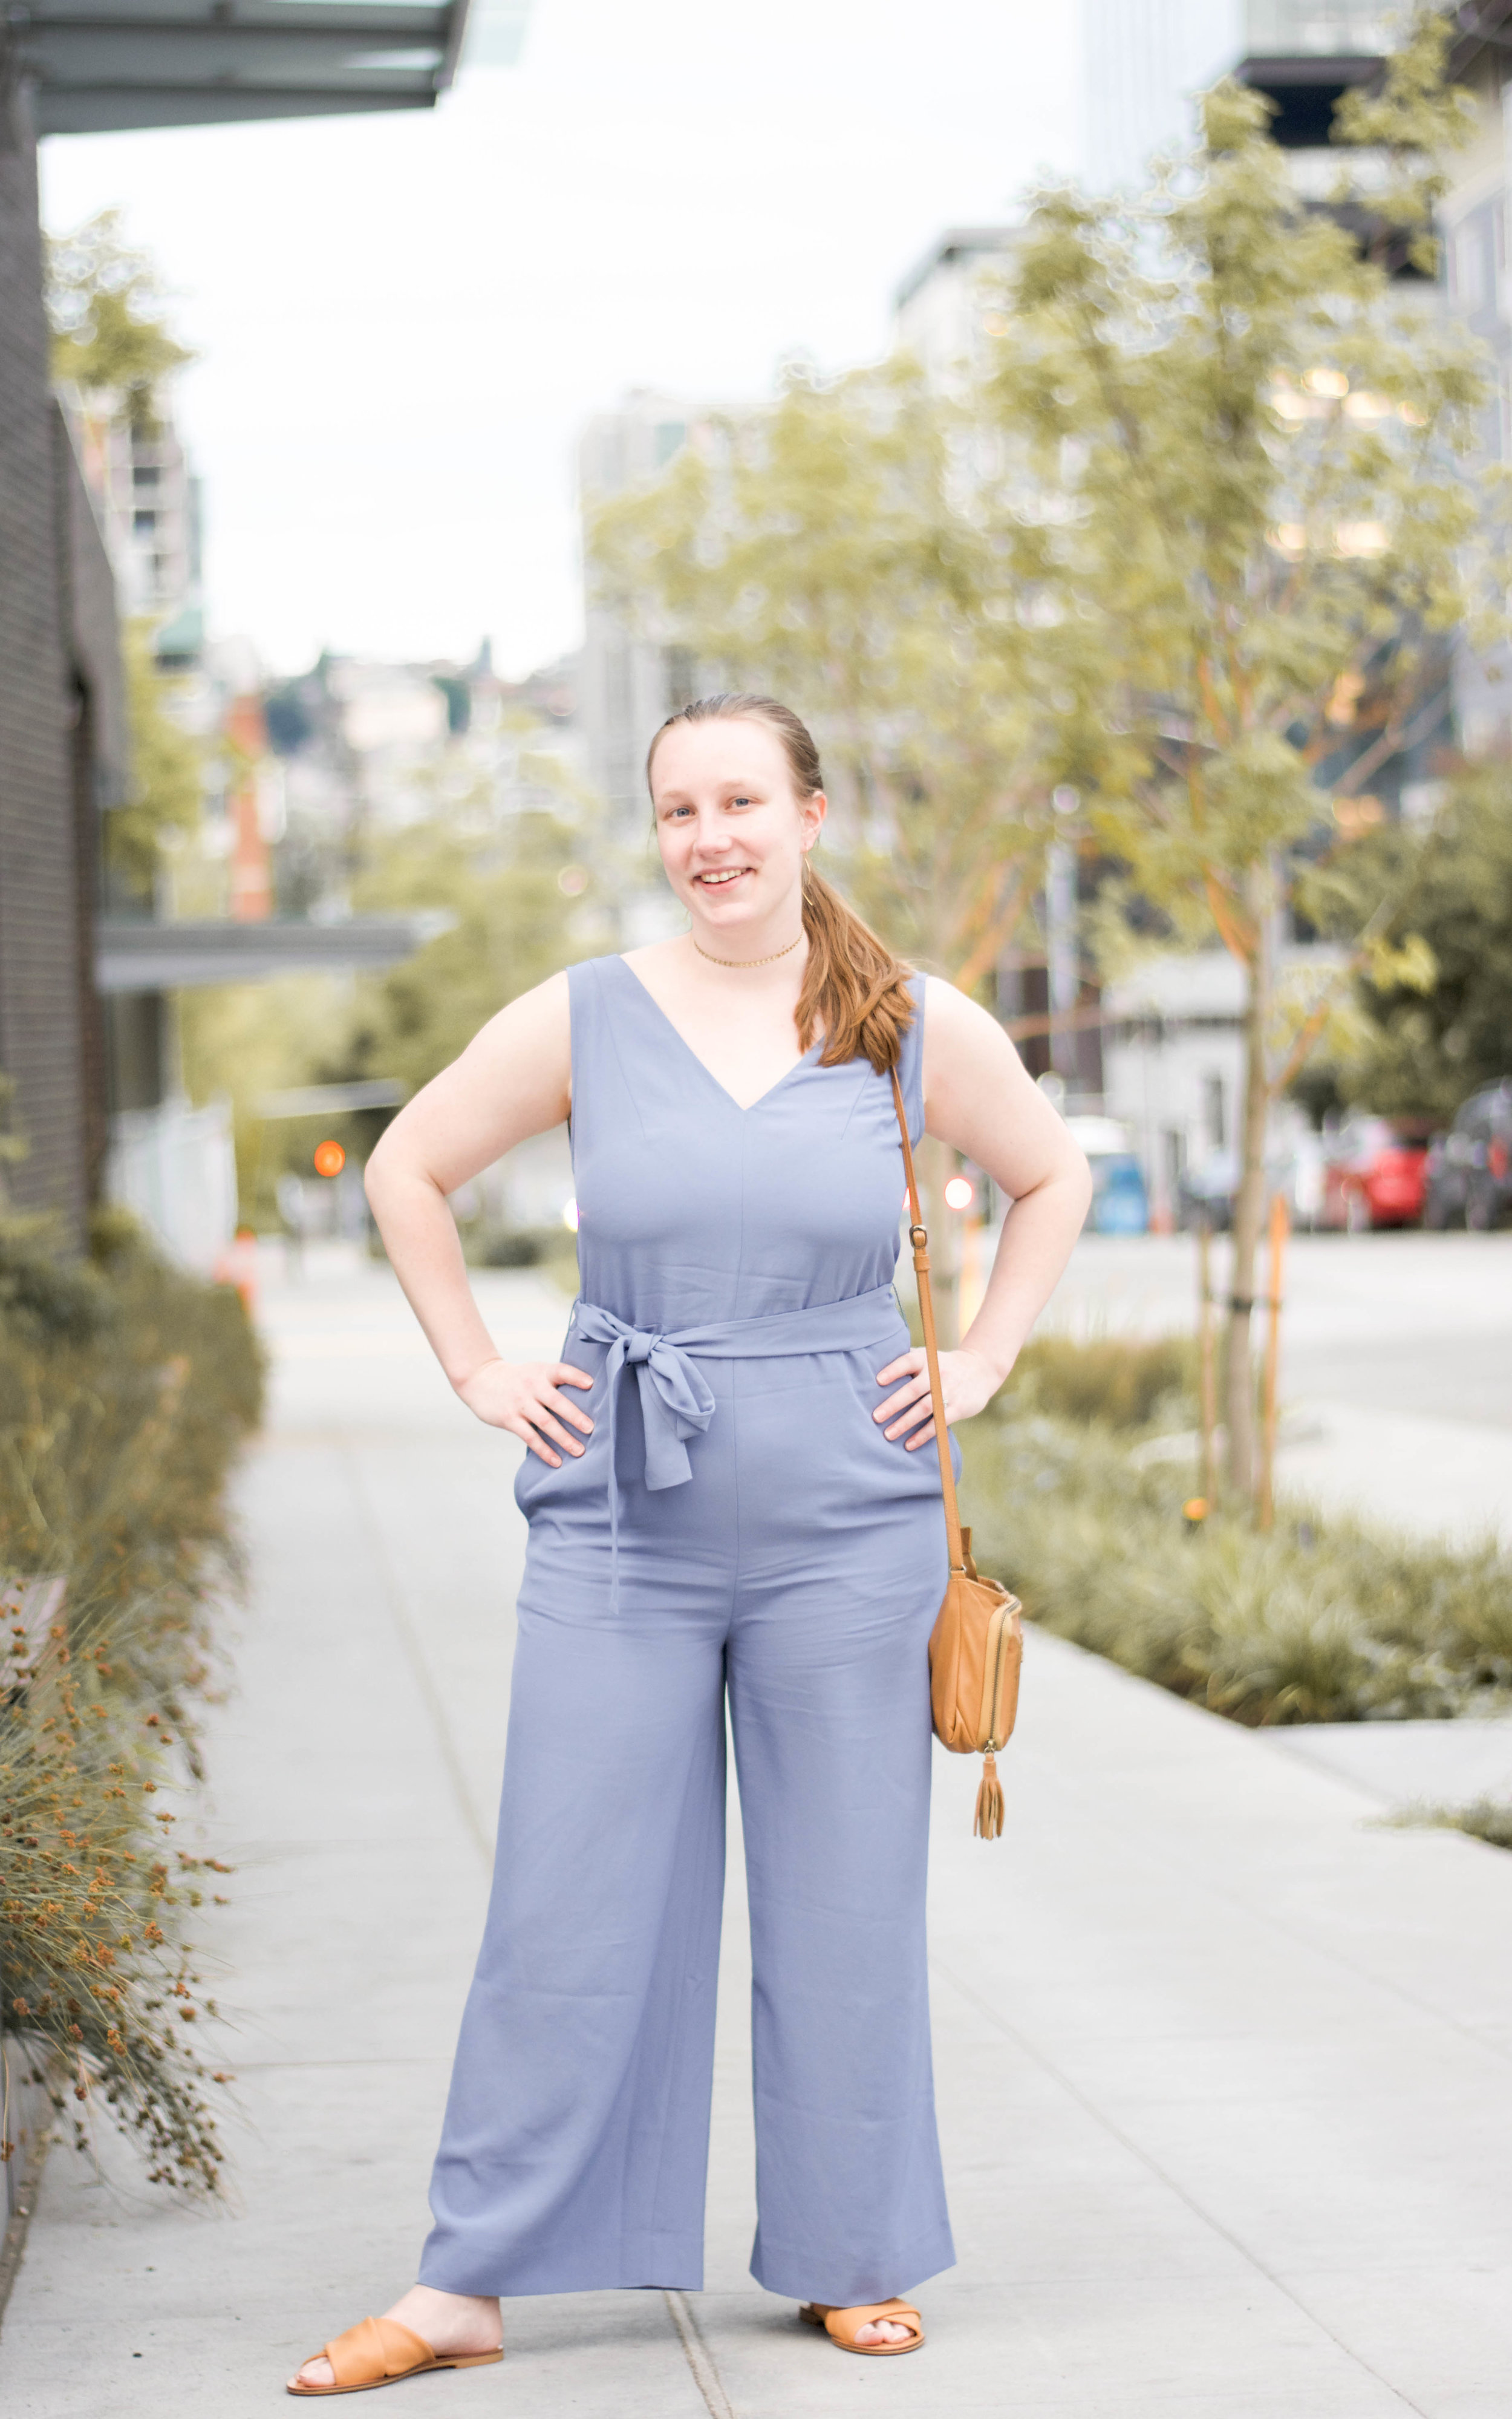 Everlane jumpsuit // A Week Of Values-Driven Outfits With Emily Waddell From The Honest Consumer on The Good Trade